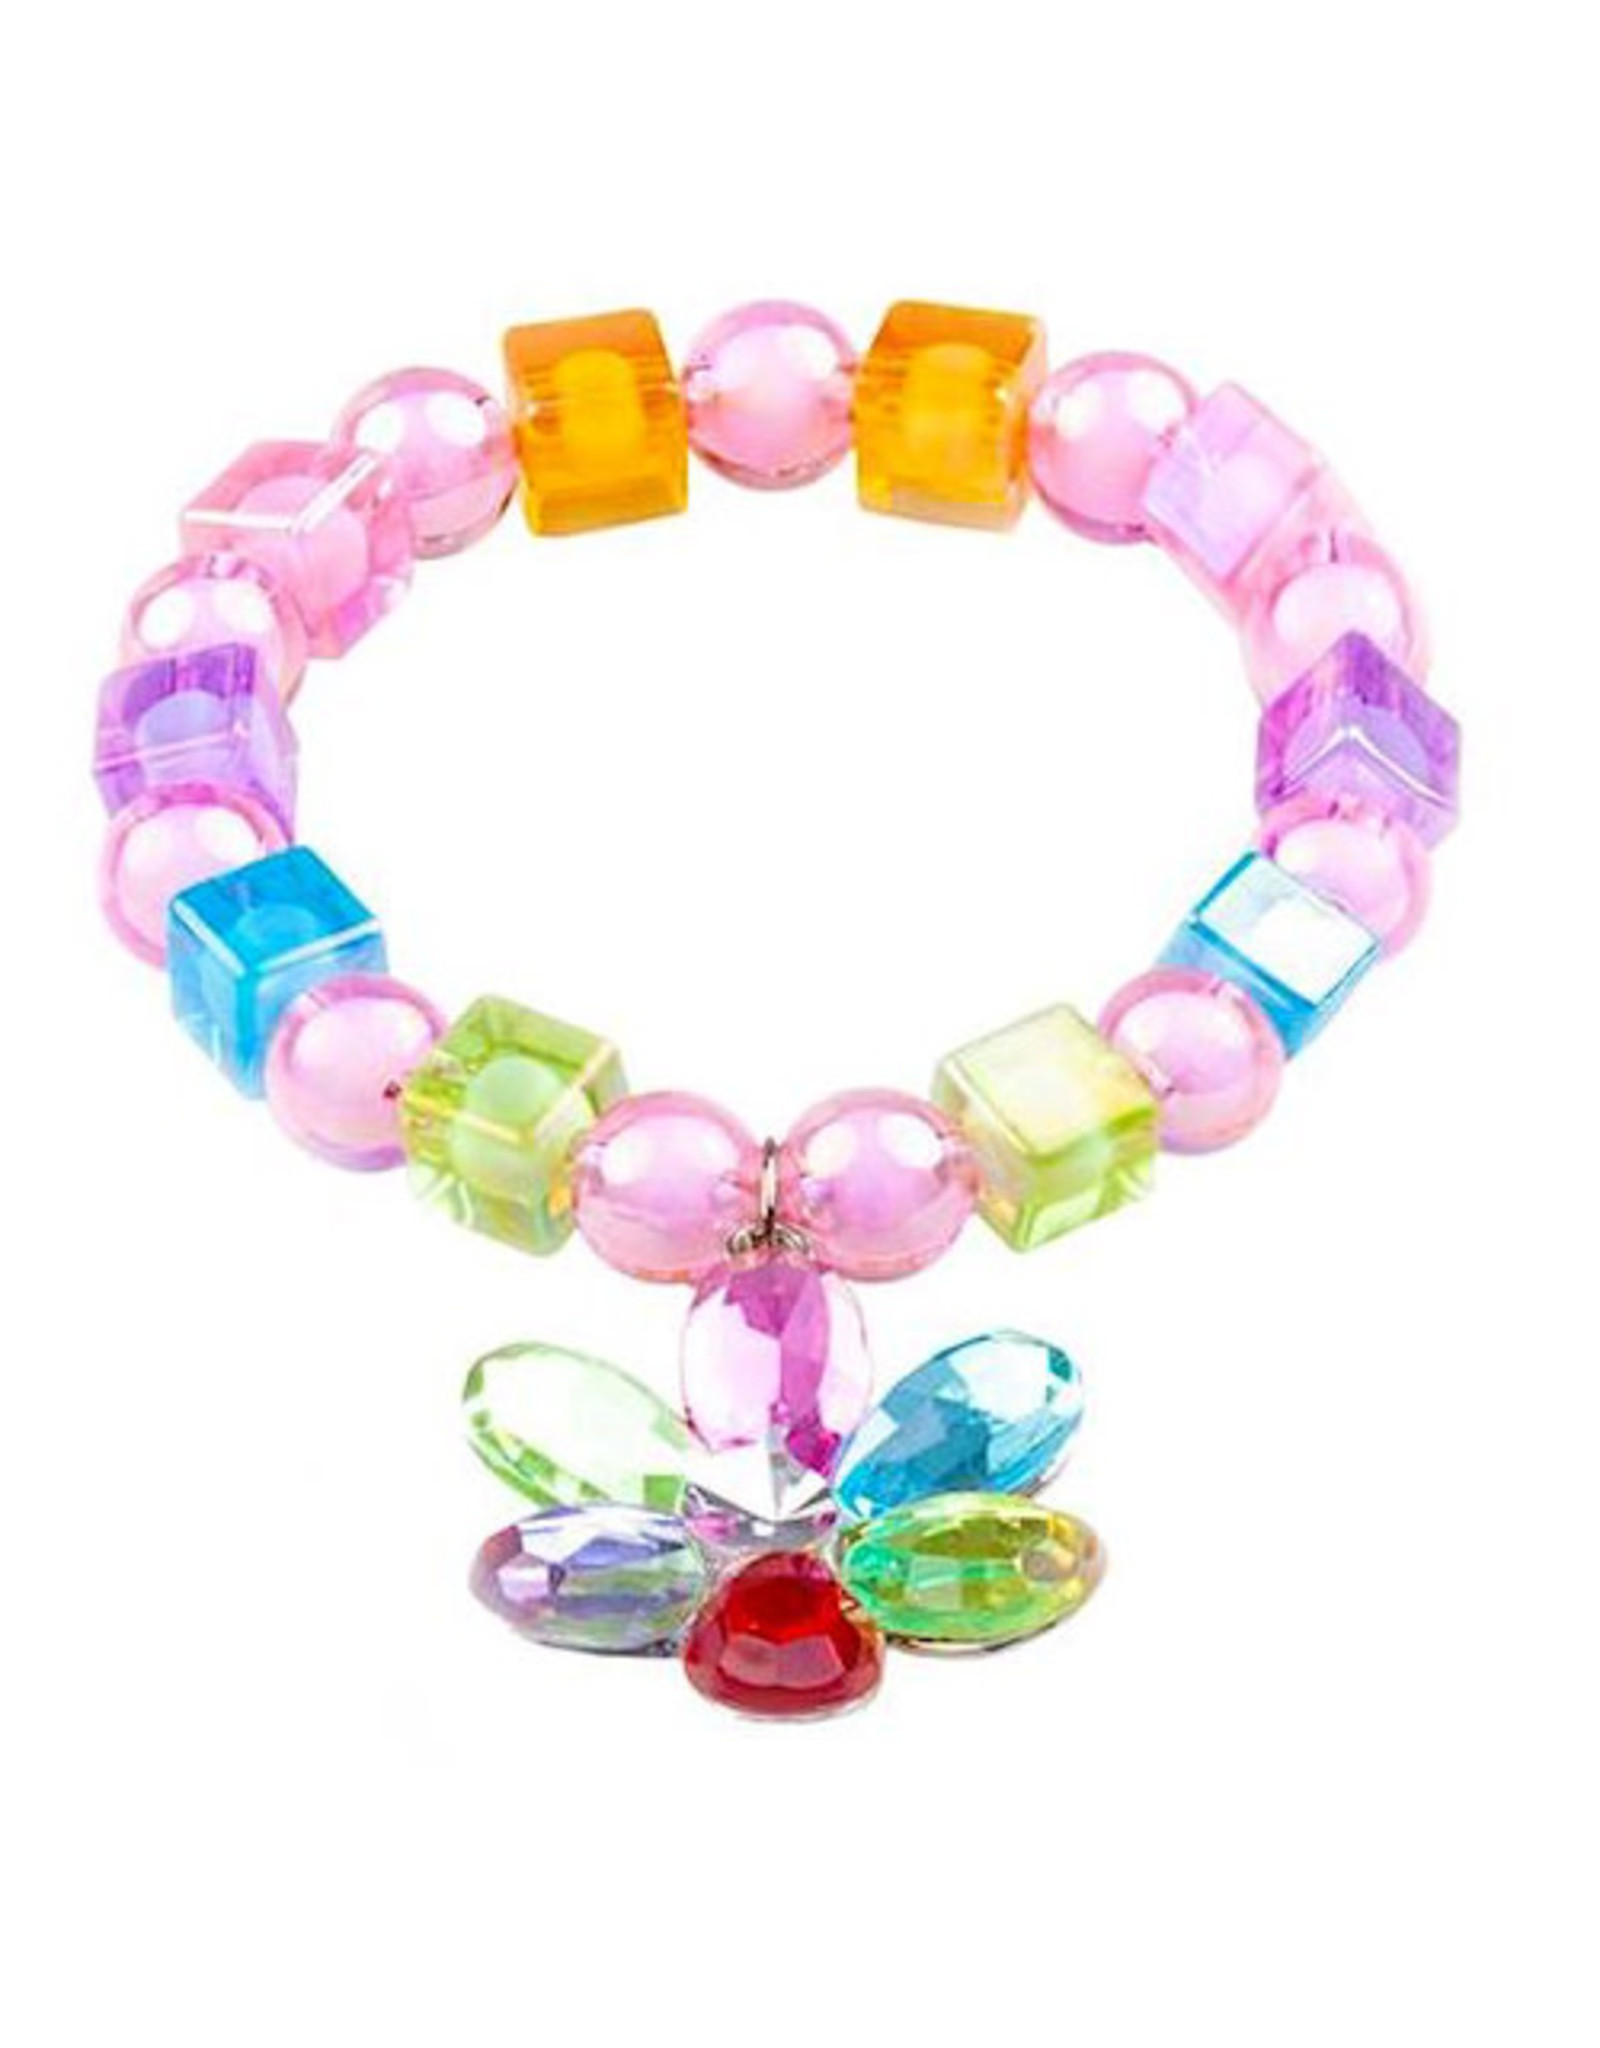 Flower Gem Bead Bracelet